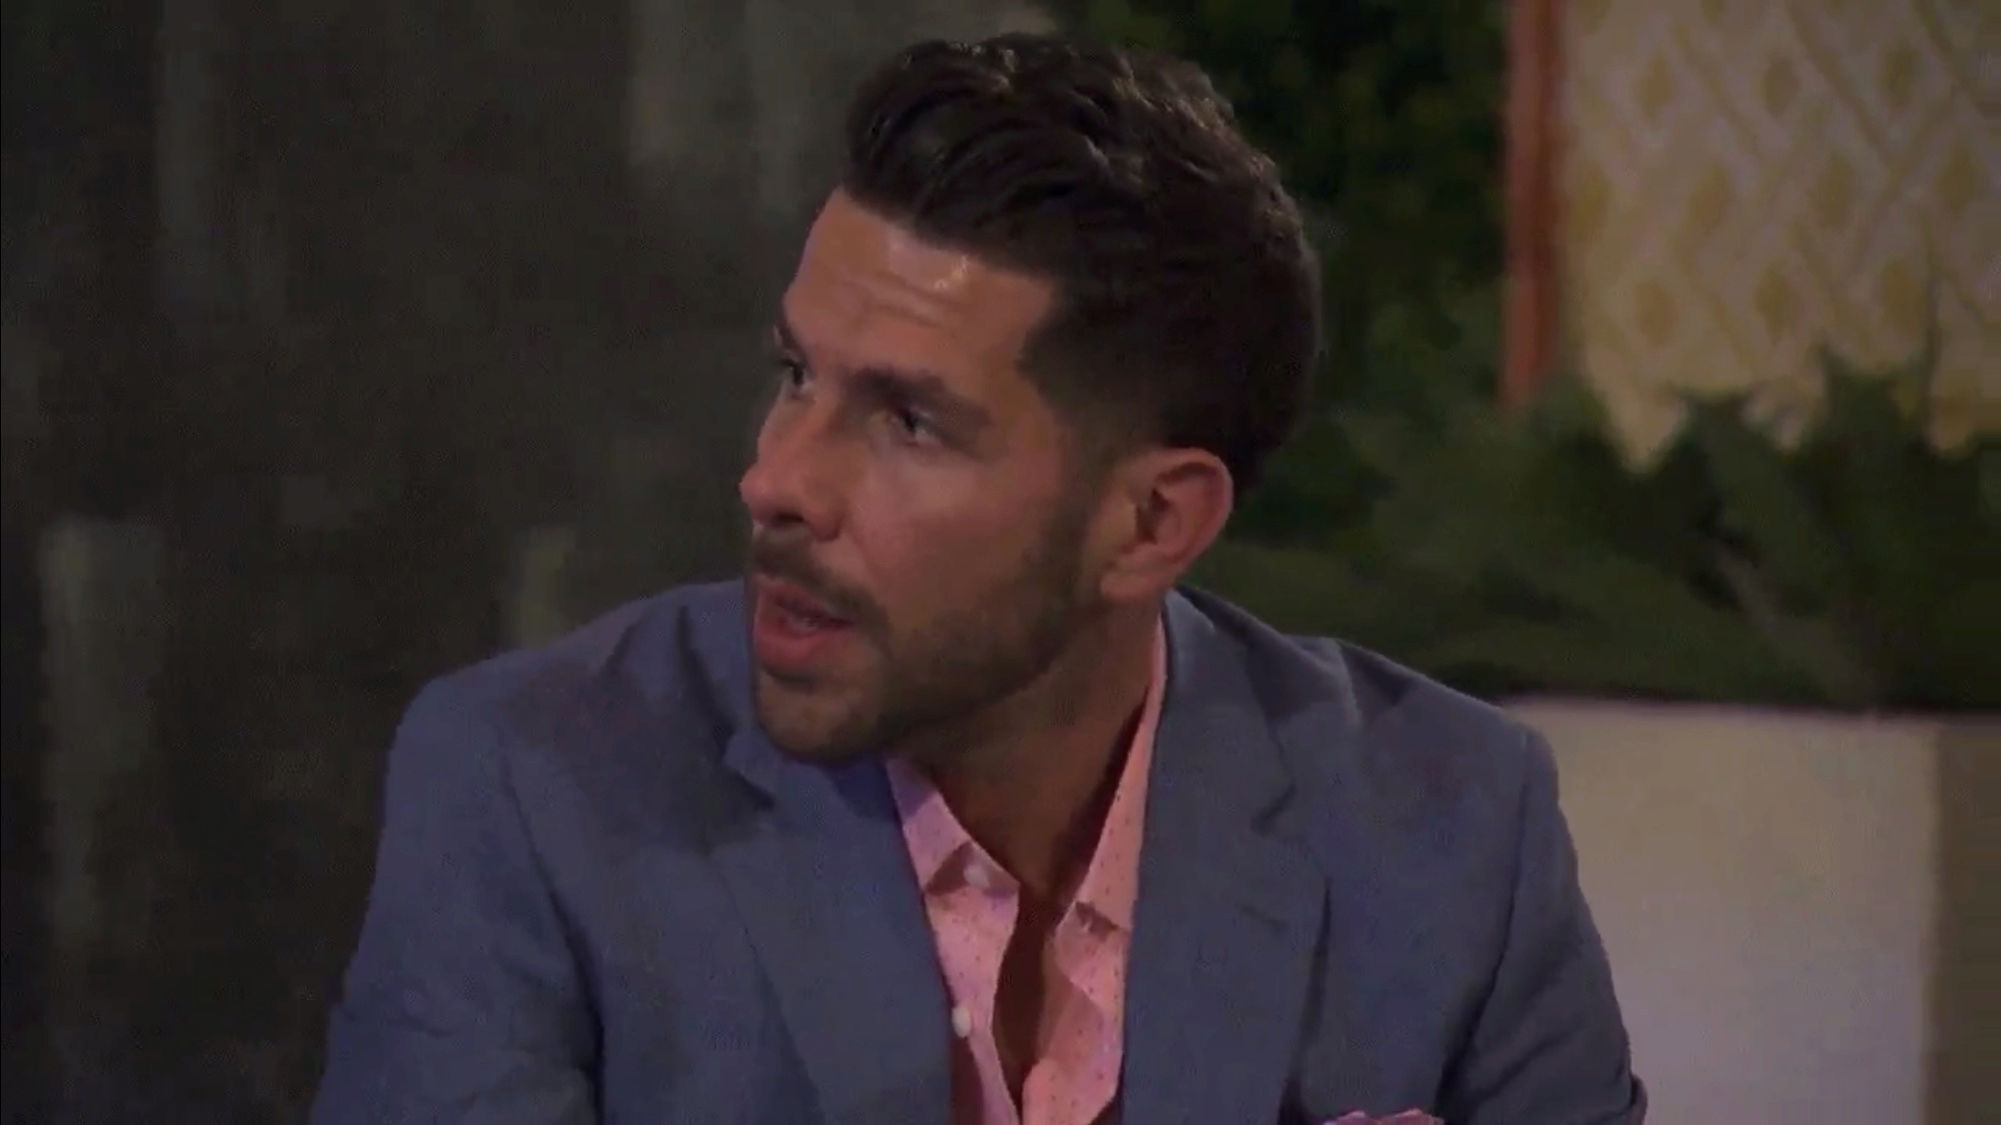 Bachelorette 14 - Becca Kufrin - ScreenCaps - NO Discussion - *Sleuthing Spoilers* A446fc10